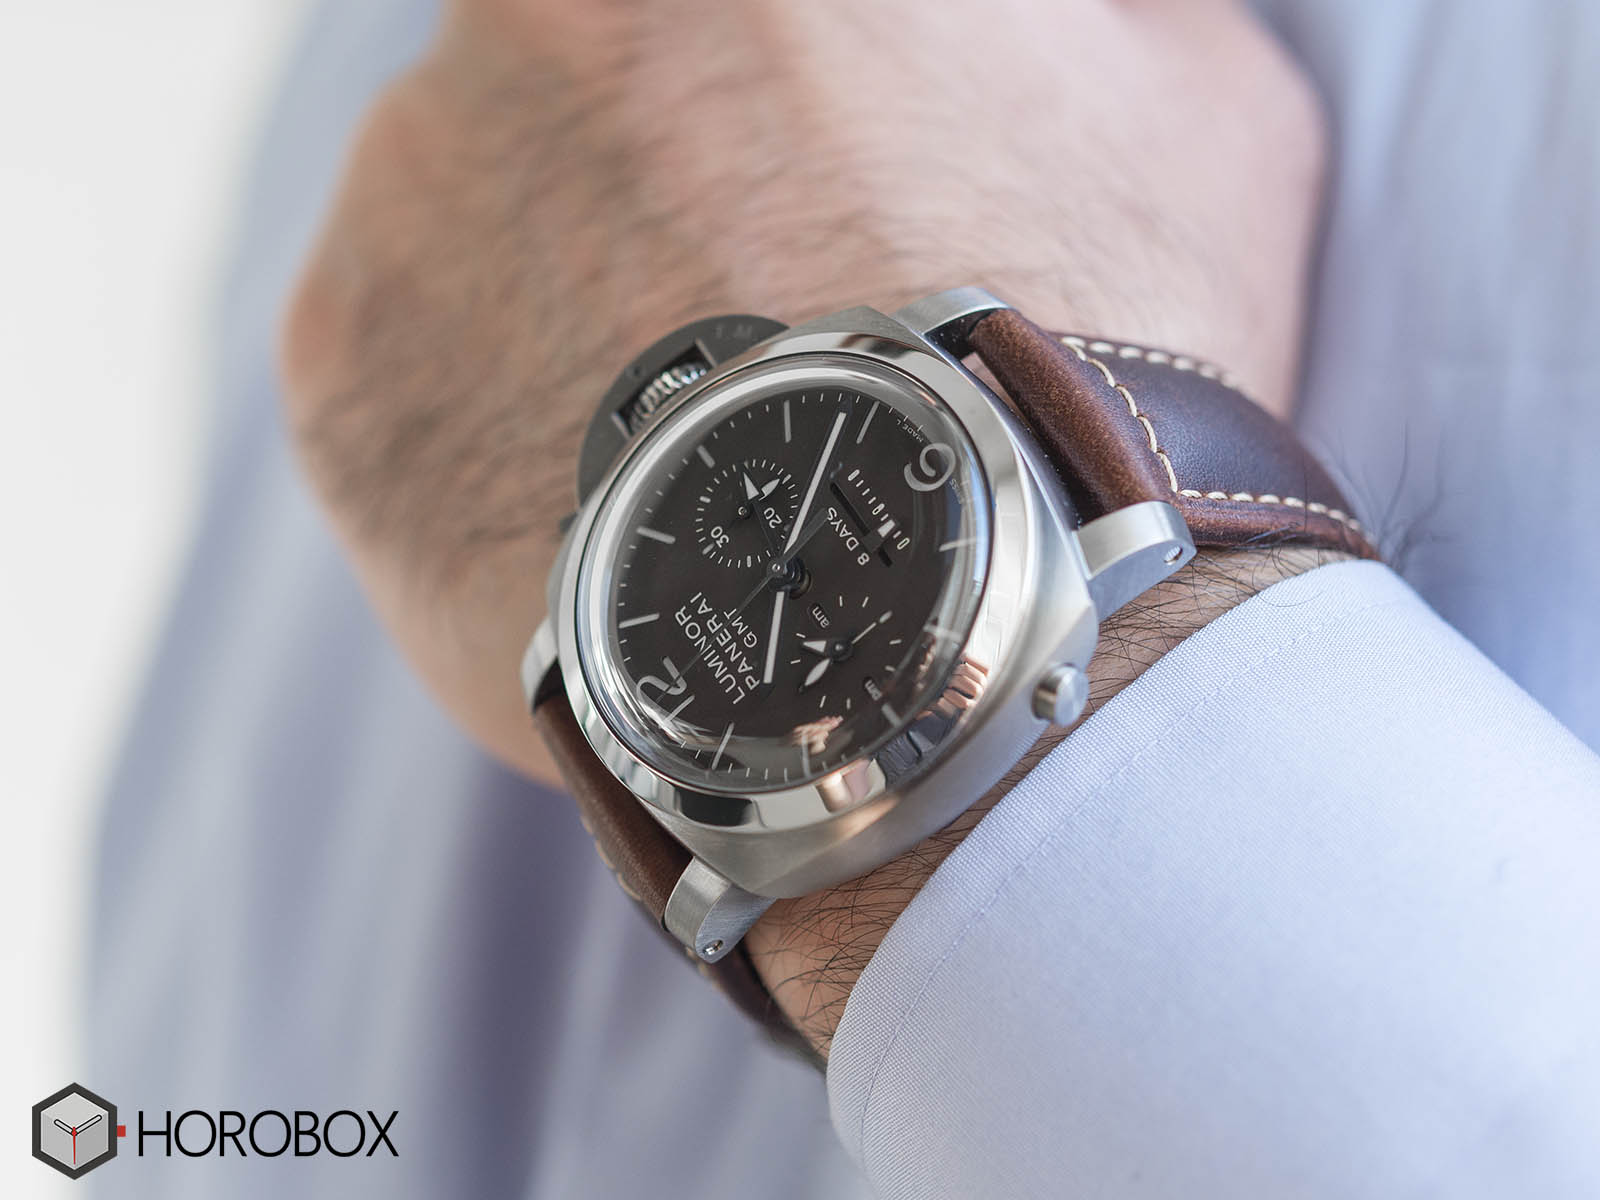 Officine-panerai-power-reserve-14.jpg